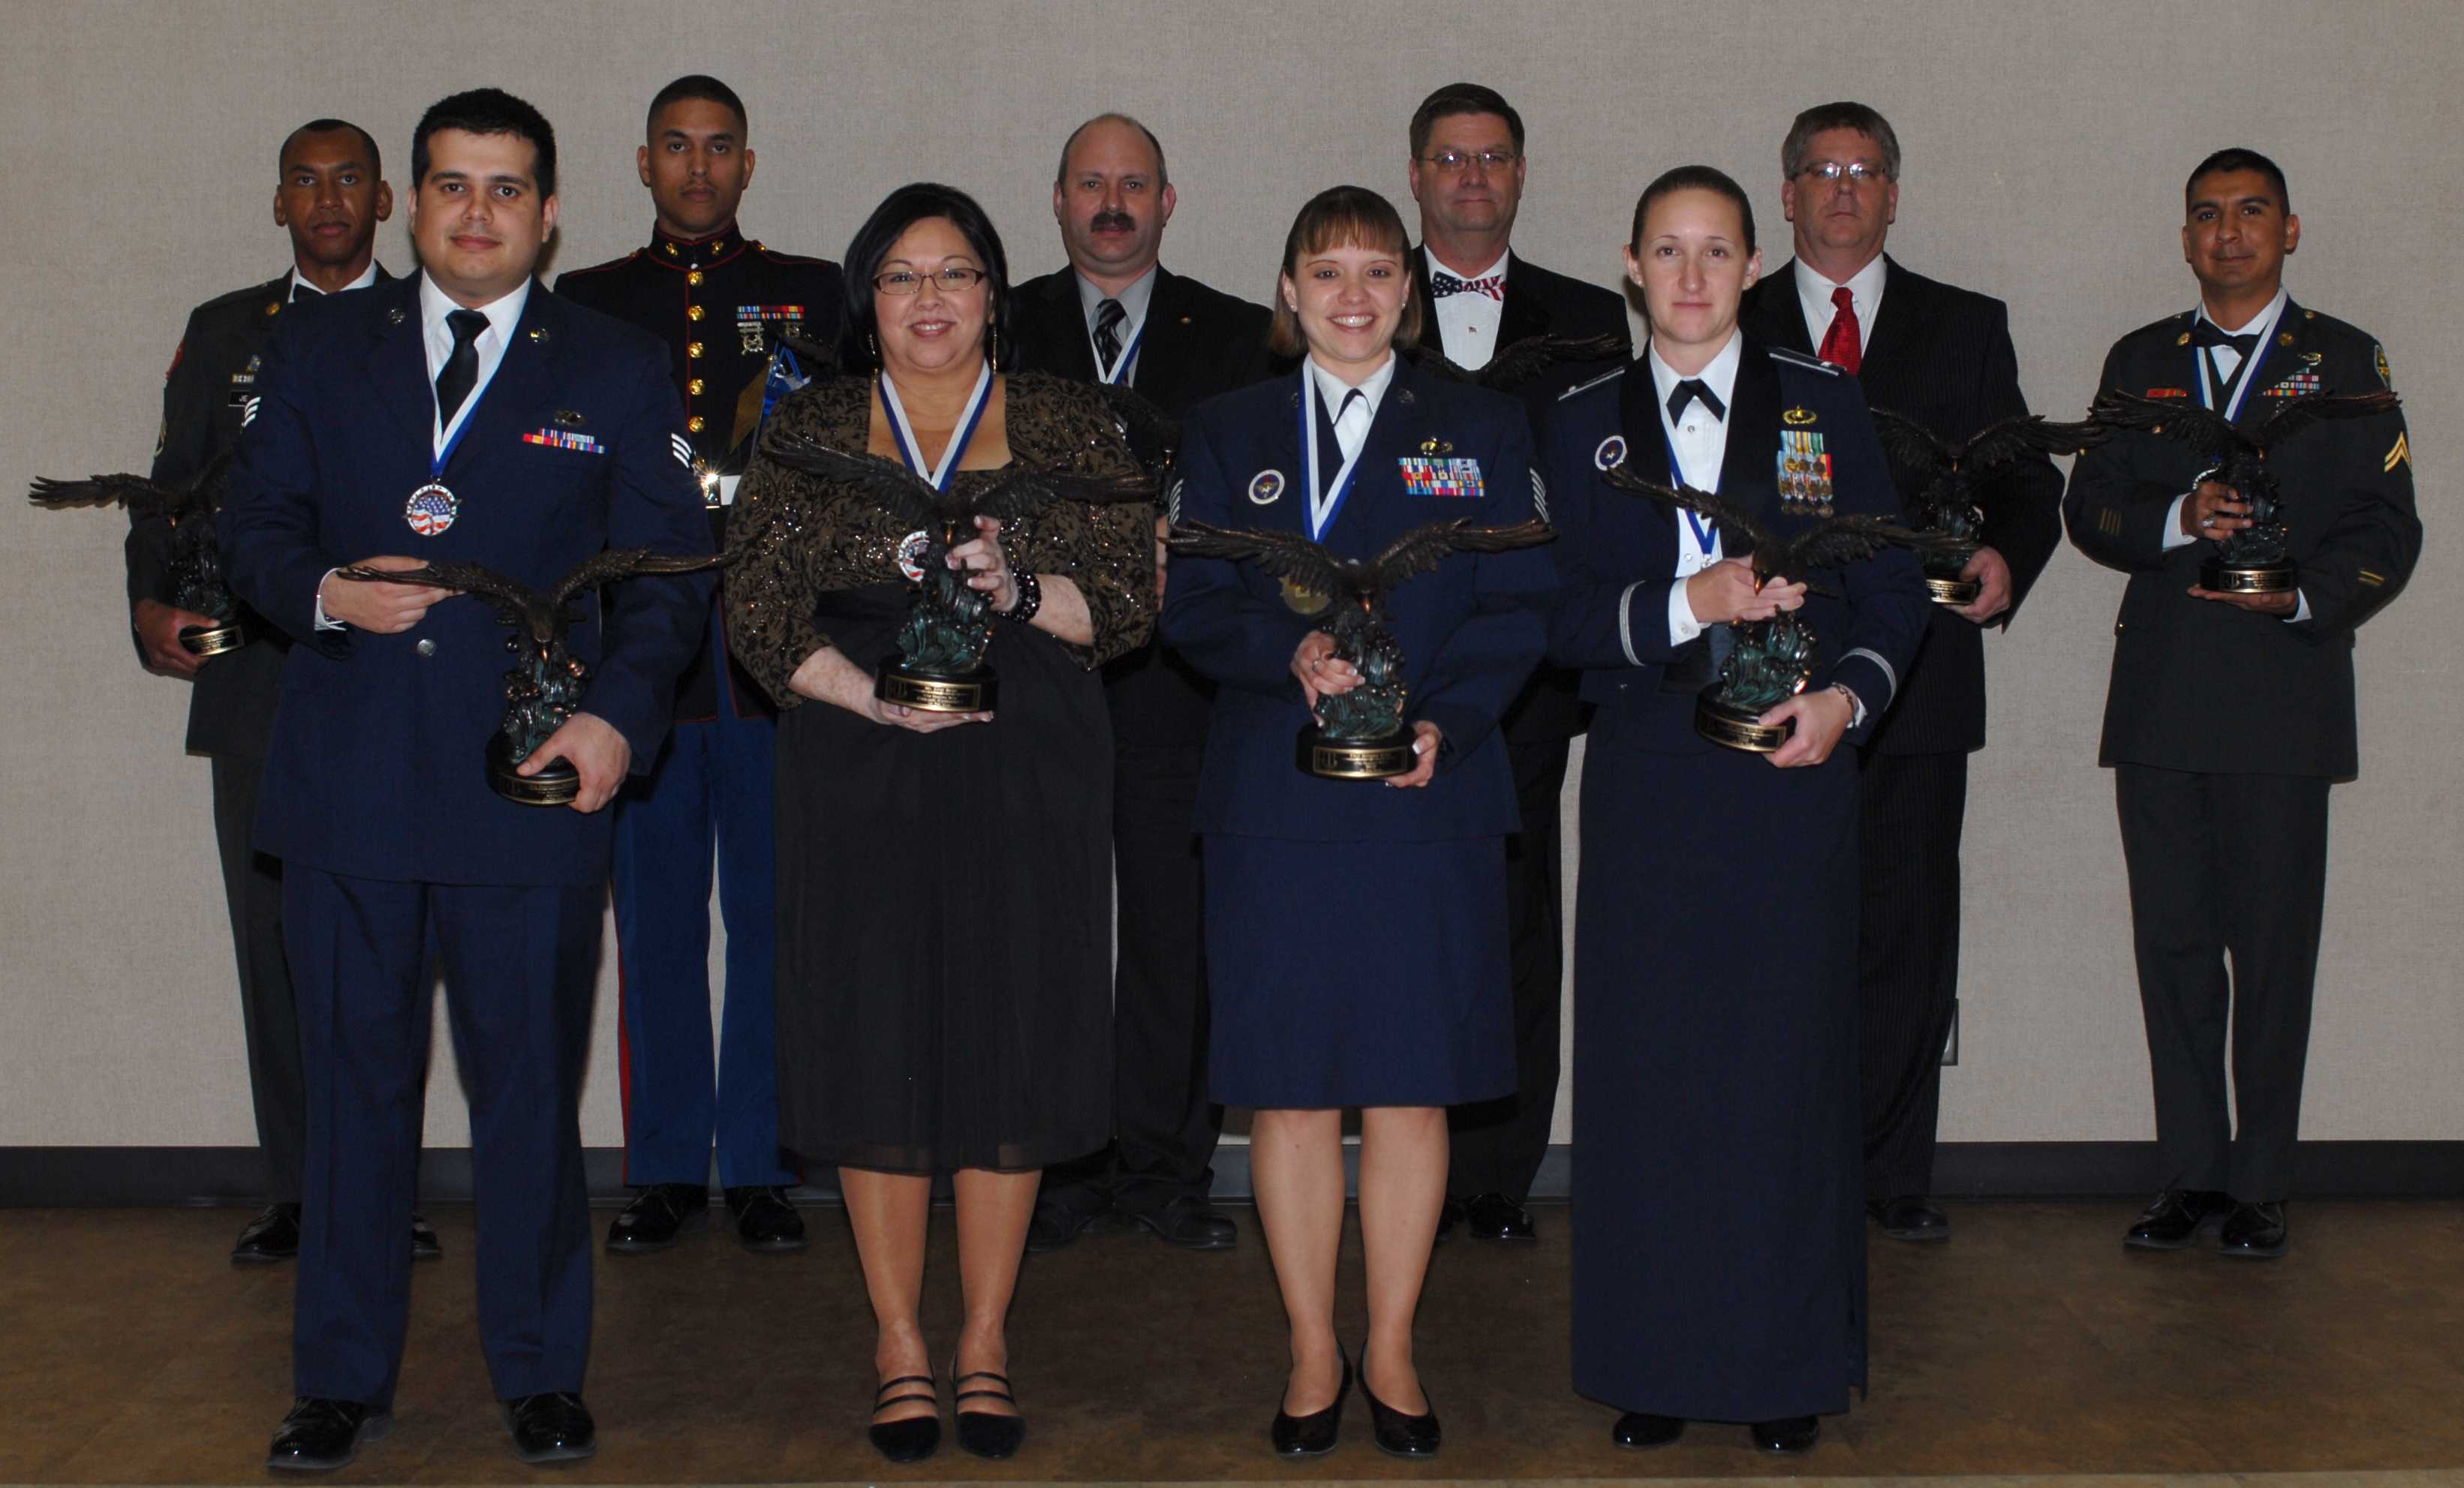 goodfellow afb singles over 50 The official website for the air education and training command.